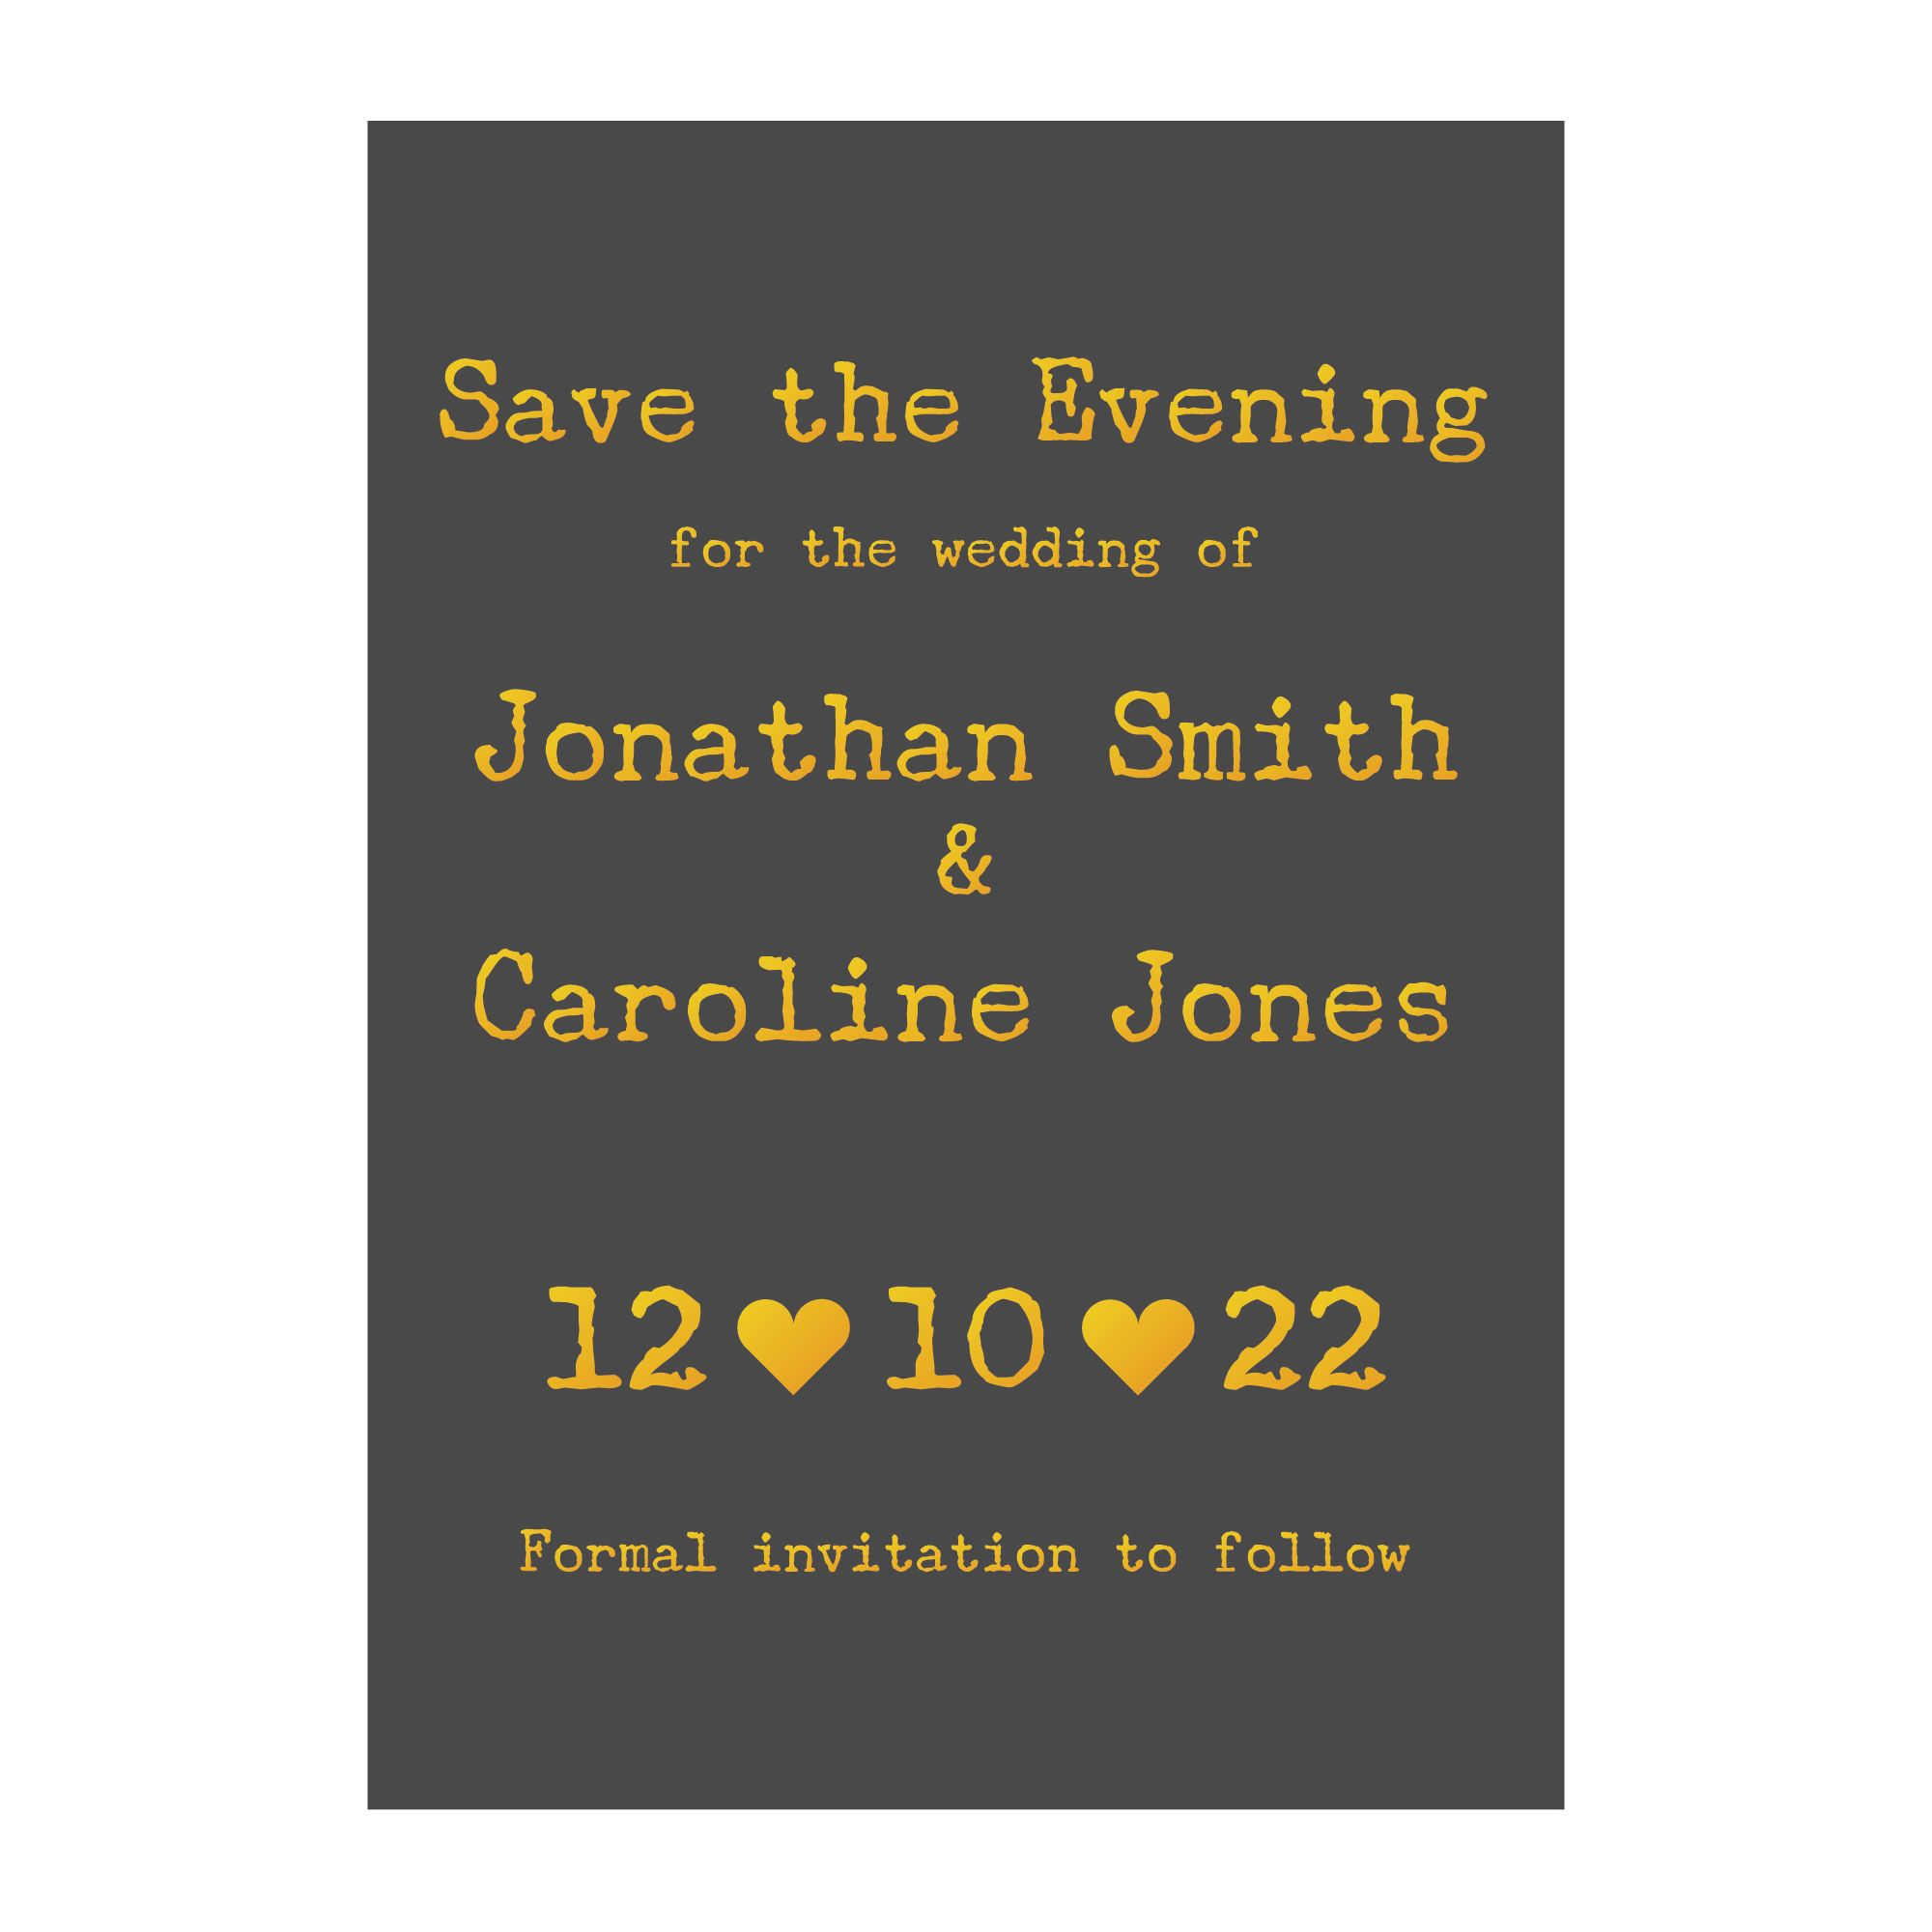 Grey with Gold Foil Rustic Typewriter Wedding Save the Evening Cards